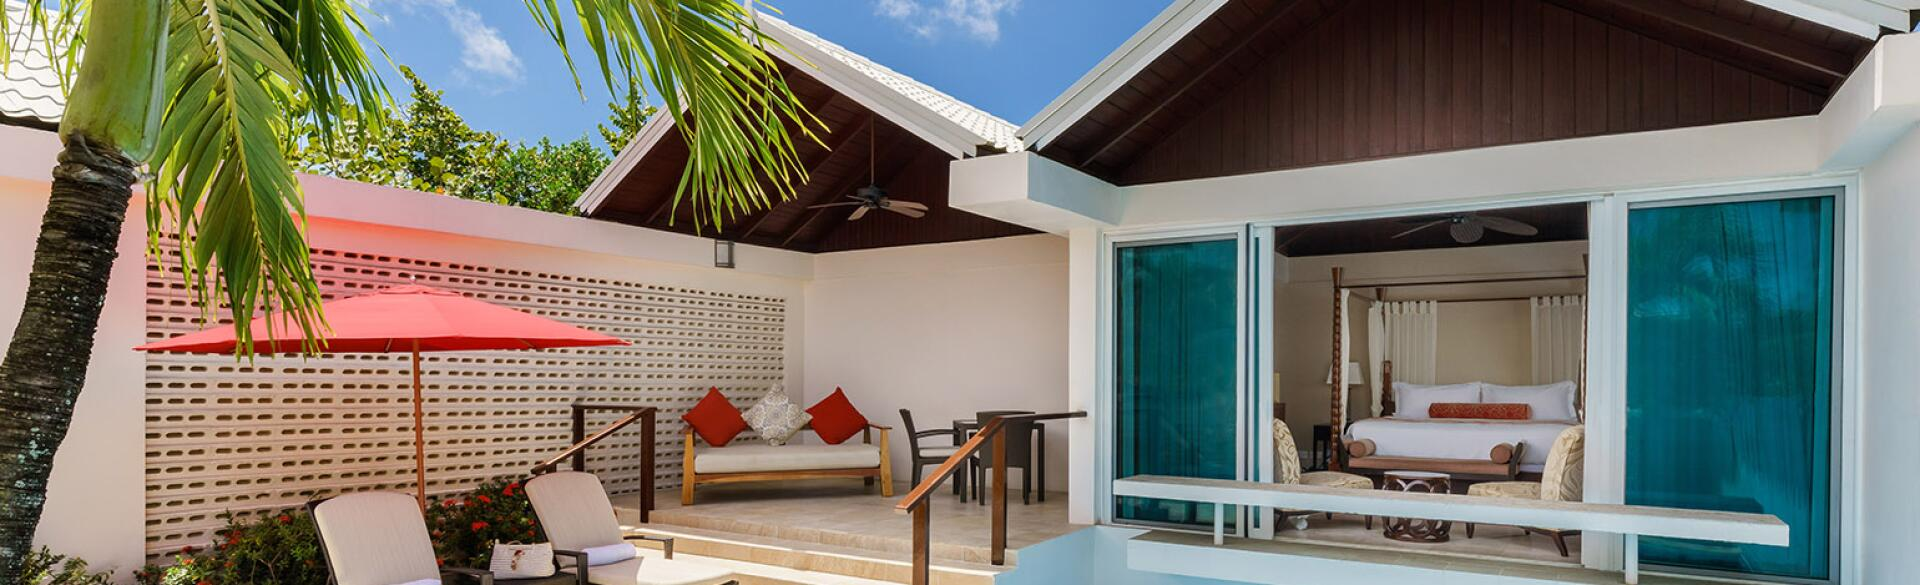 image_of_pool_suite_at_Spice_Resort_Luxury Almond Pool Suite_Exterior_1540.jpg